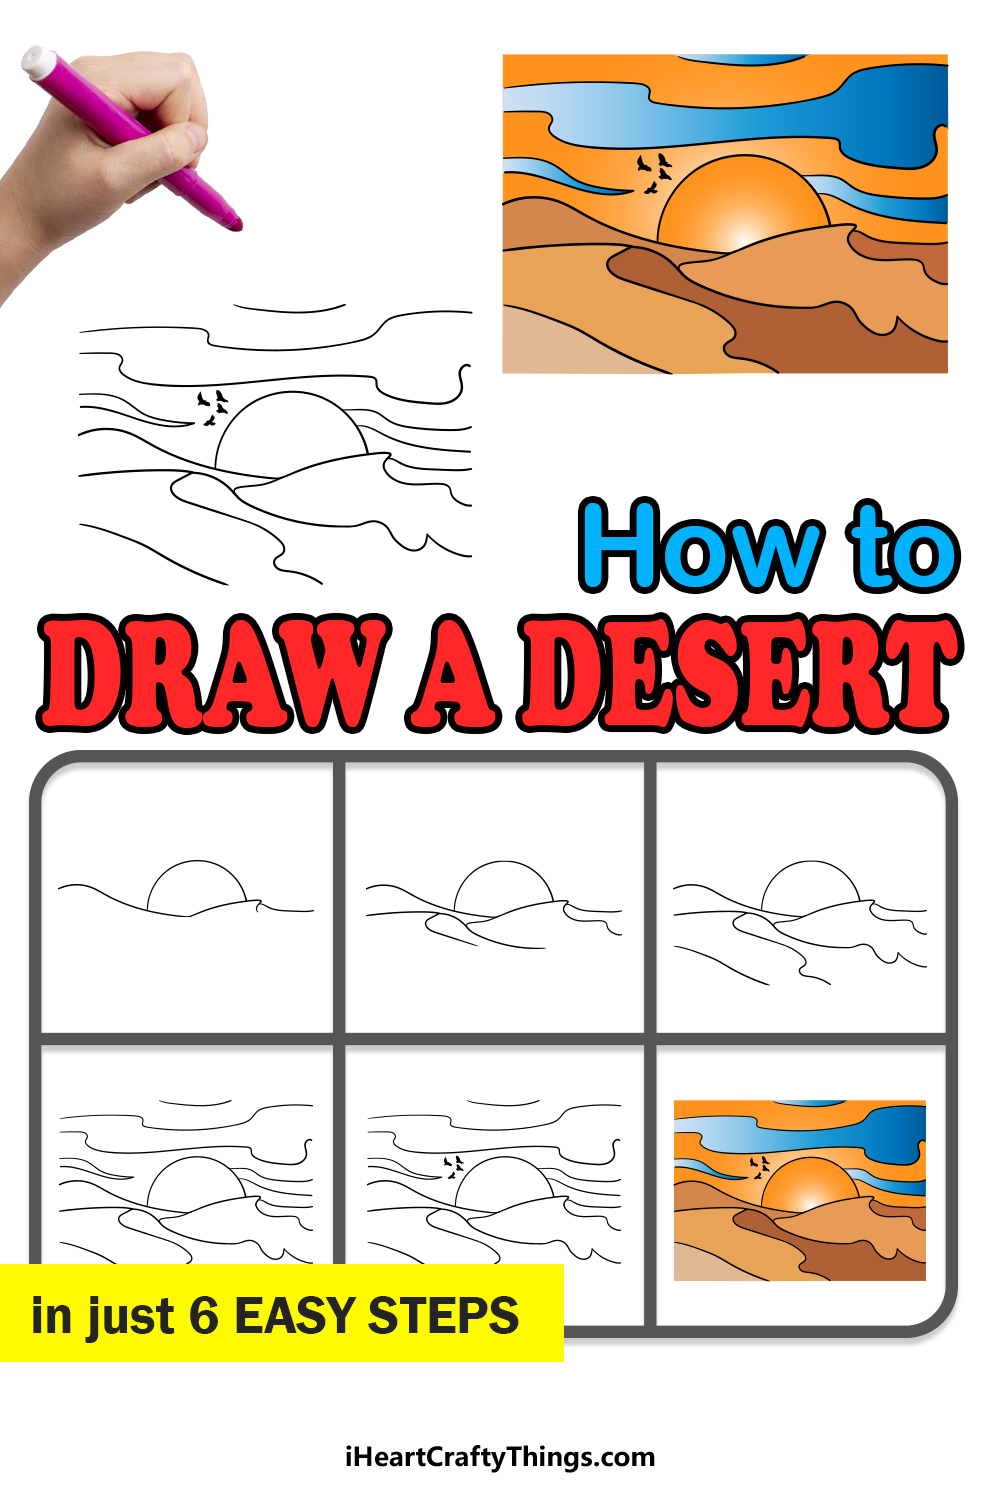 how to draw a desert in 6 easy steps